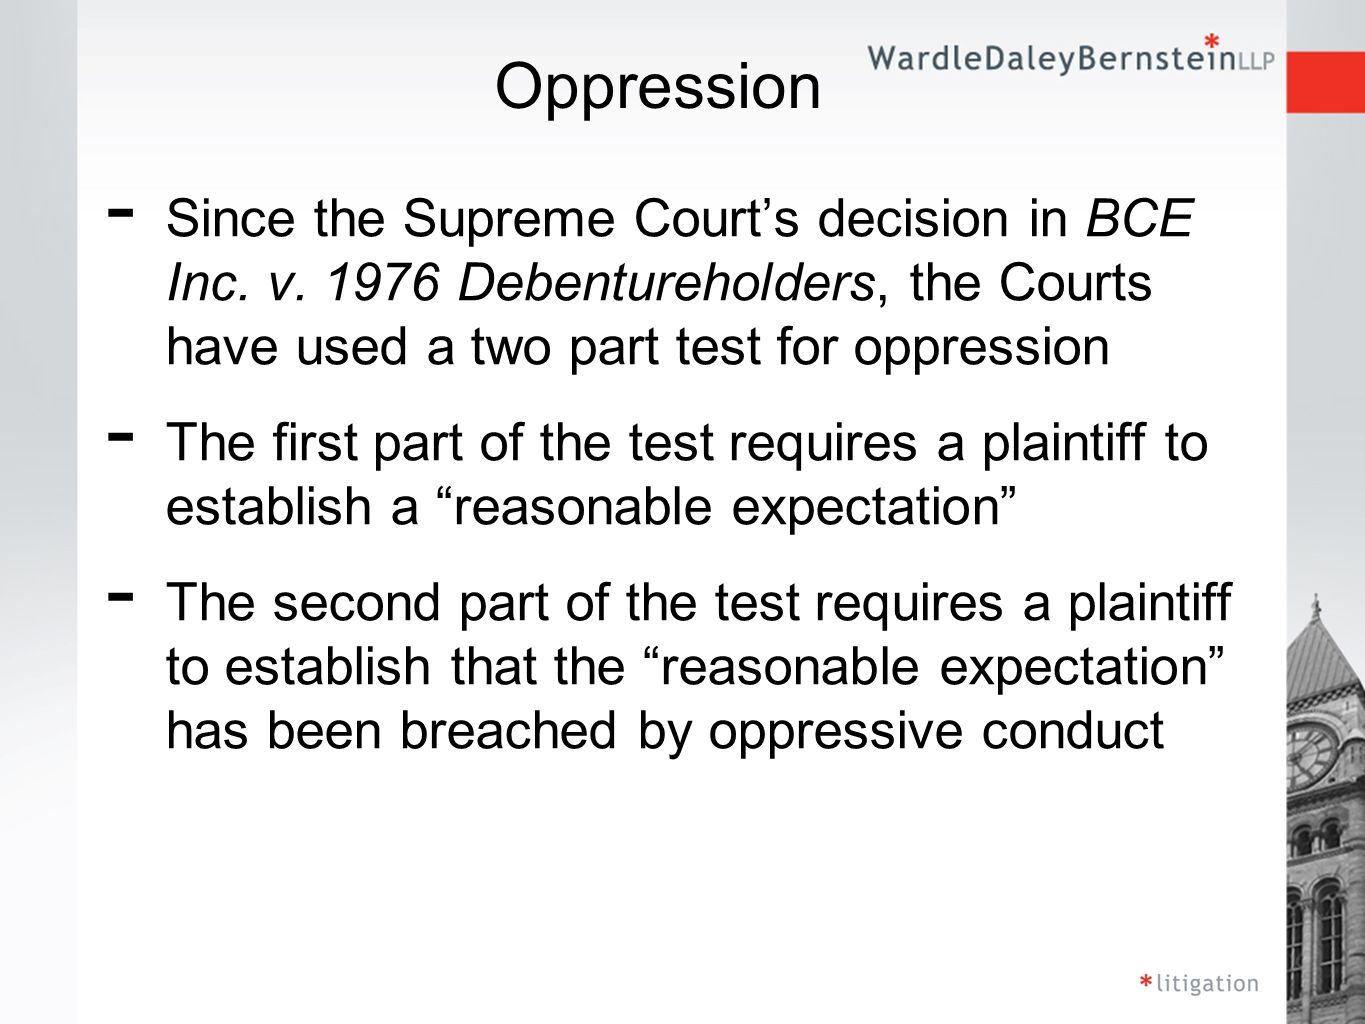 Reasonable Expectations - To determine whether there is a reasonable expectation , the Court will look at a number of factors, including: - general commercial practice - the nature of the corporation, - the relationship between the parties, - past practice, - steps the claimant could have taken to protect itself, - representations and agreements, and - the fair resolution of conflicting interests between corporate stakeholders.